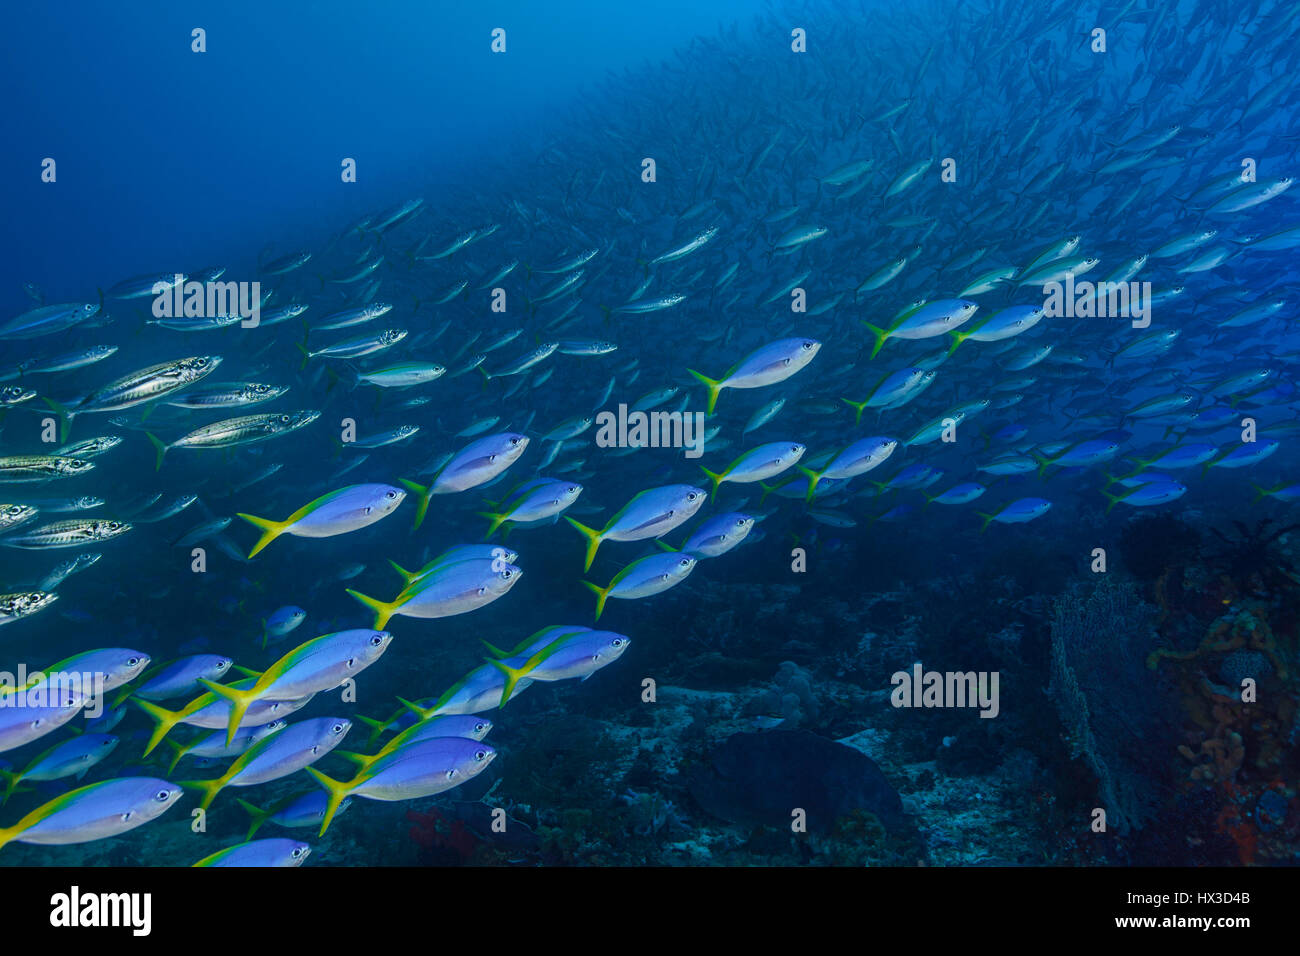 Large schools of yellowtail fusiliers (Caesio teres) and baracuda swarm over coral reef to feed during strong current. - Stock Image